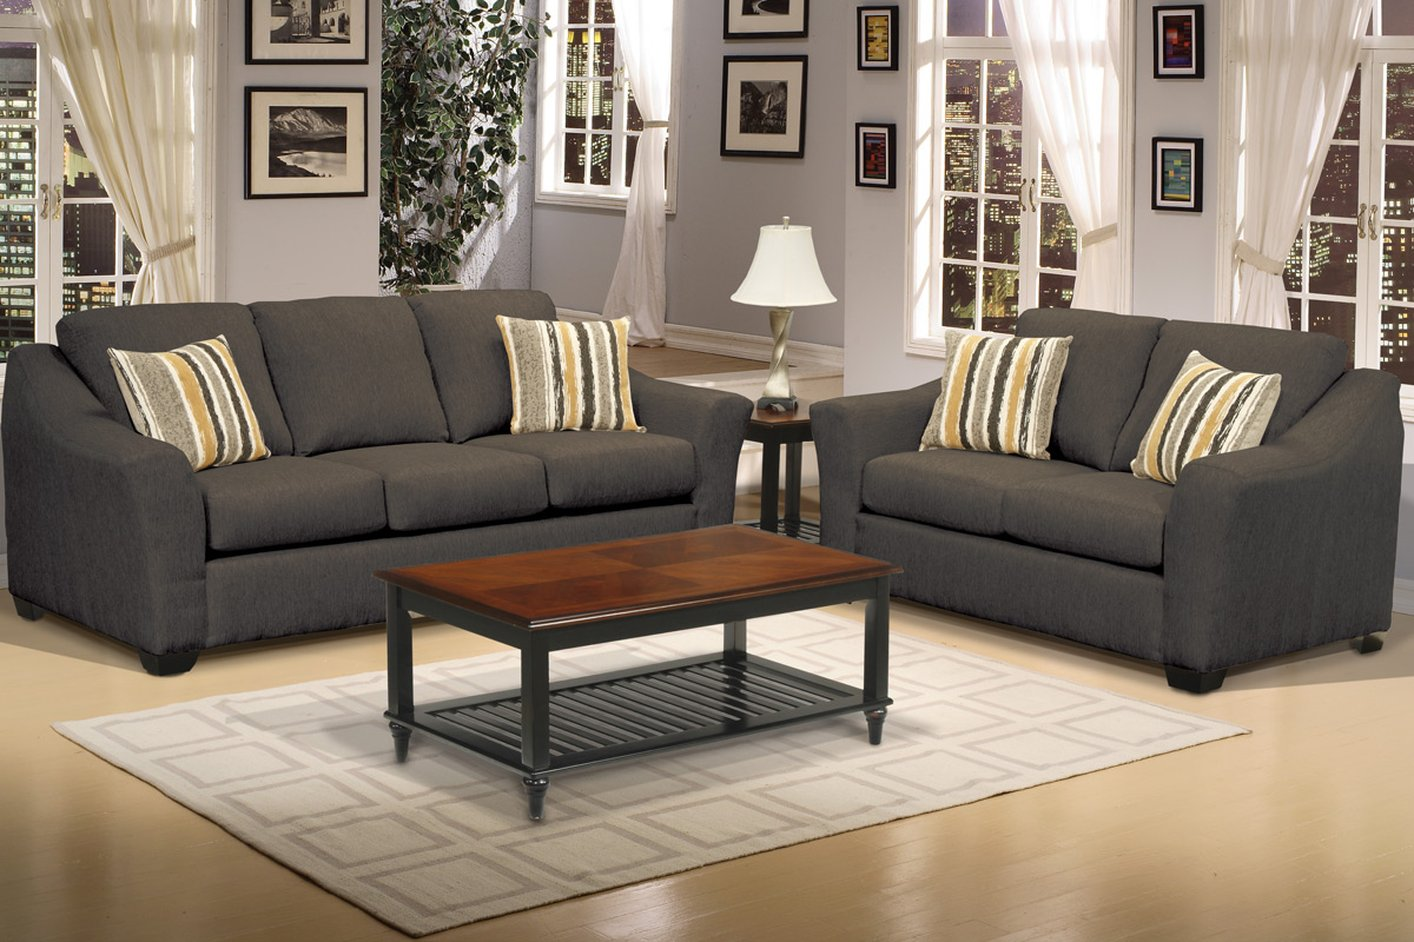 https://sep.yimg.com/ay/yhst-130150896824807/sofa-loveseat-set-552.jpg